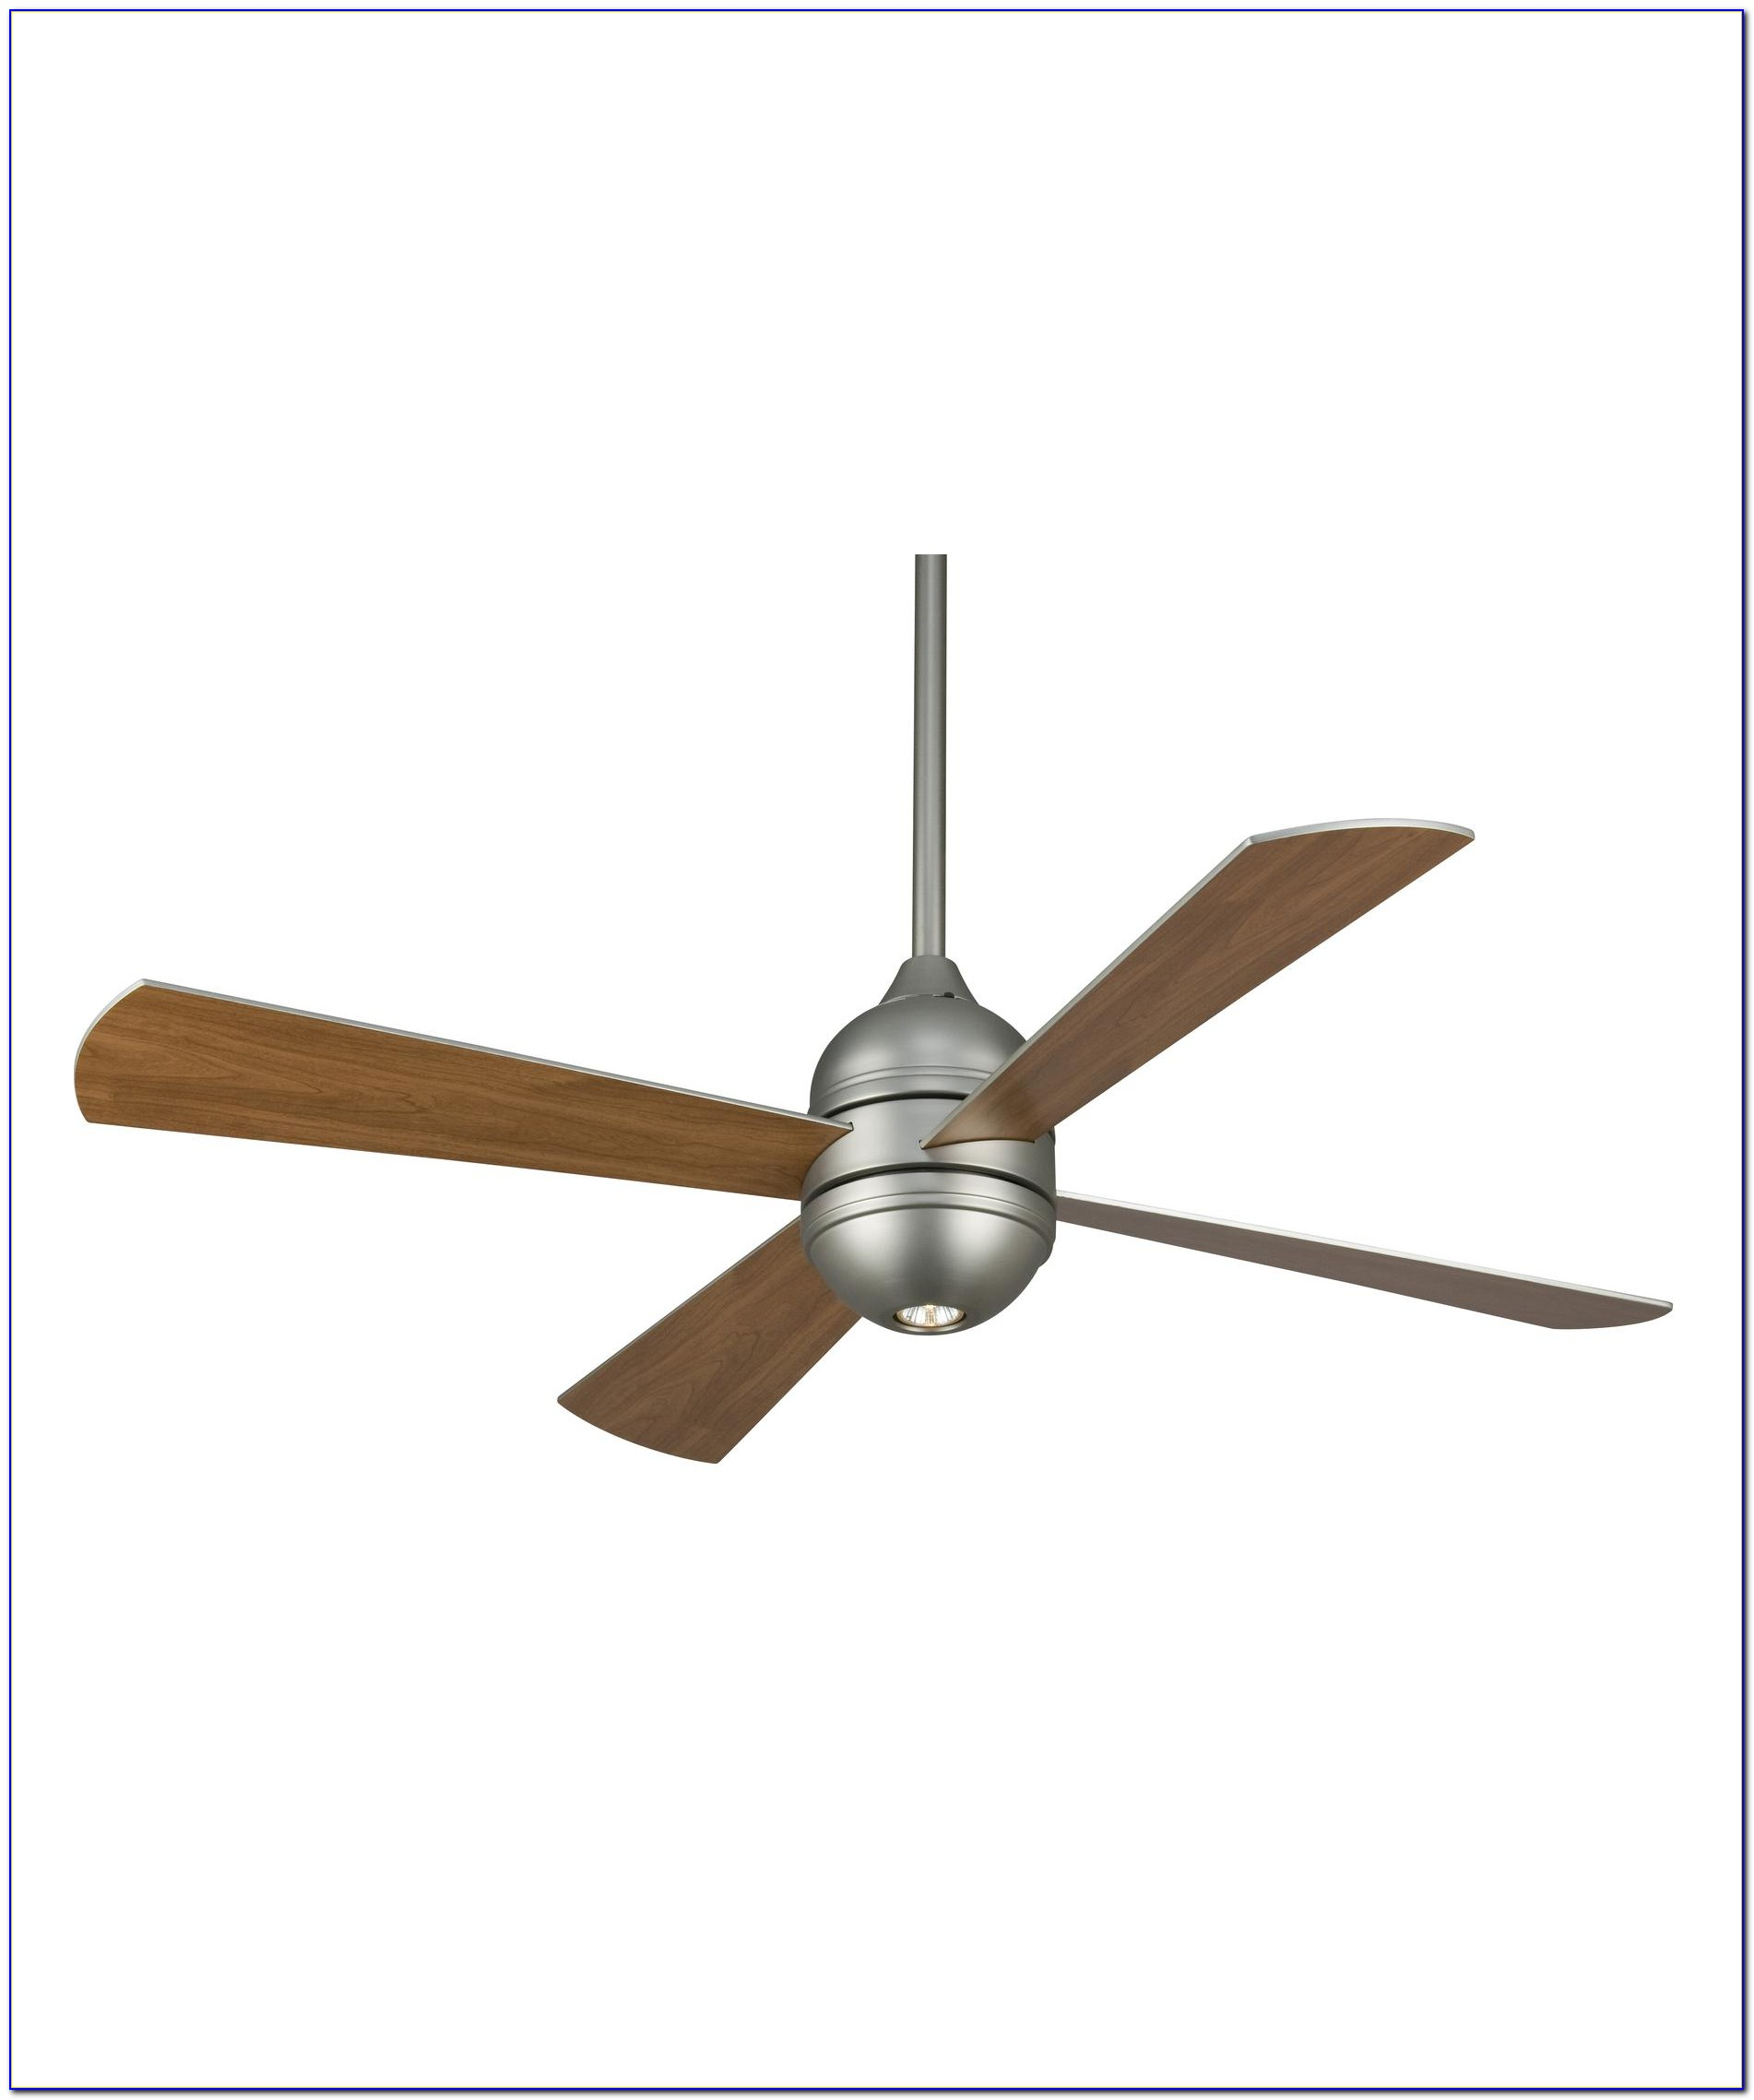 Murray Feiss Ceiling Fan Manual